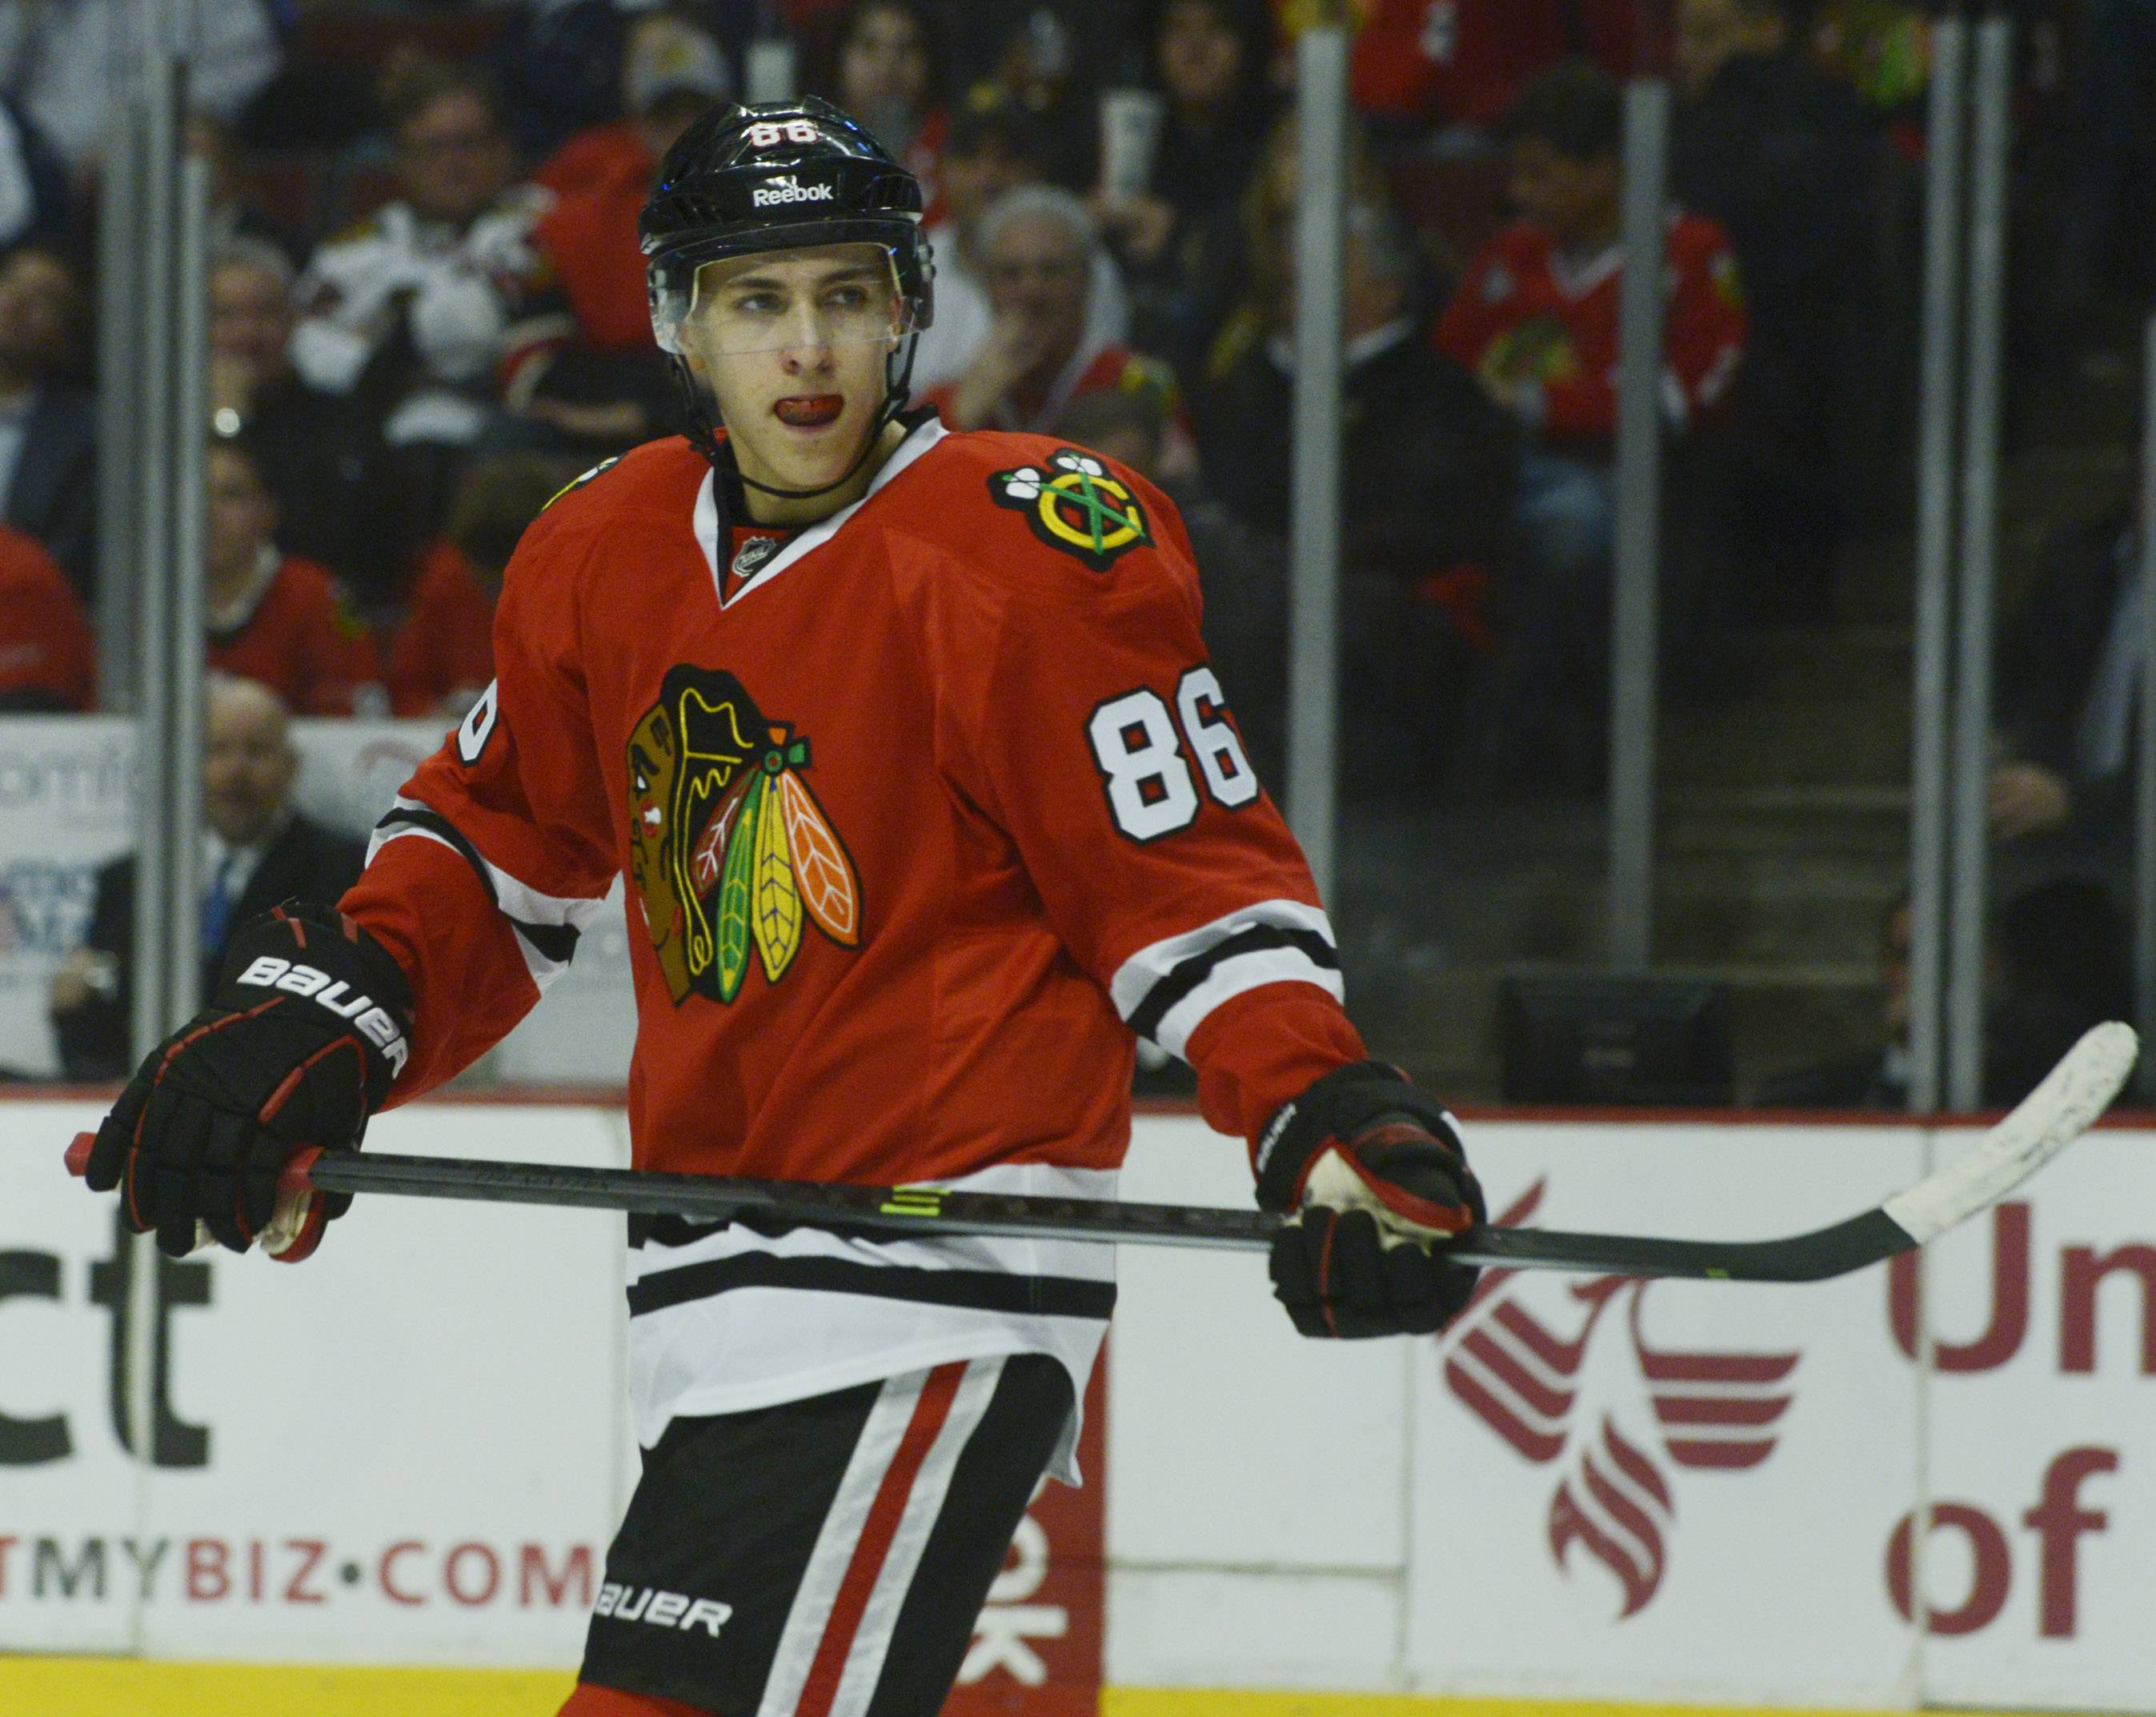 Teuvo Teravainen put on some muscle in the off-season and is hoping to play in Chicago and not Rockford when the Hawks begin their 2014-15 campaign.